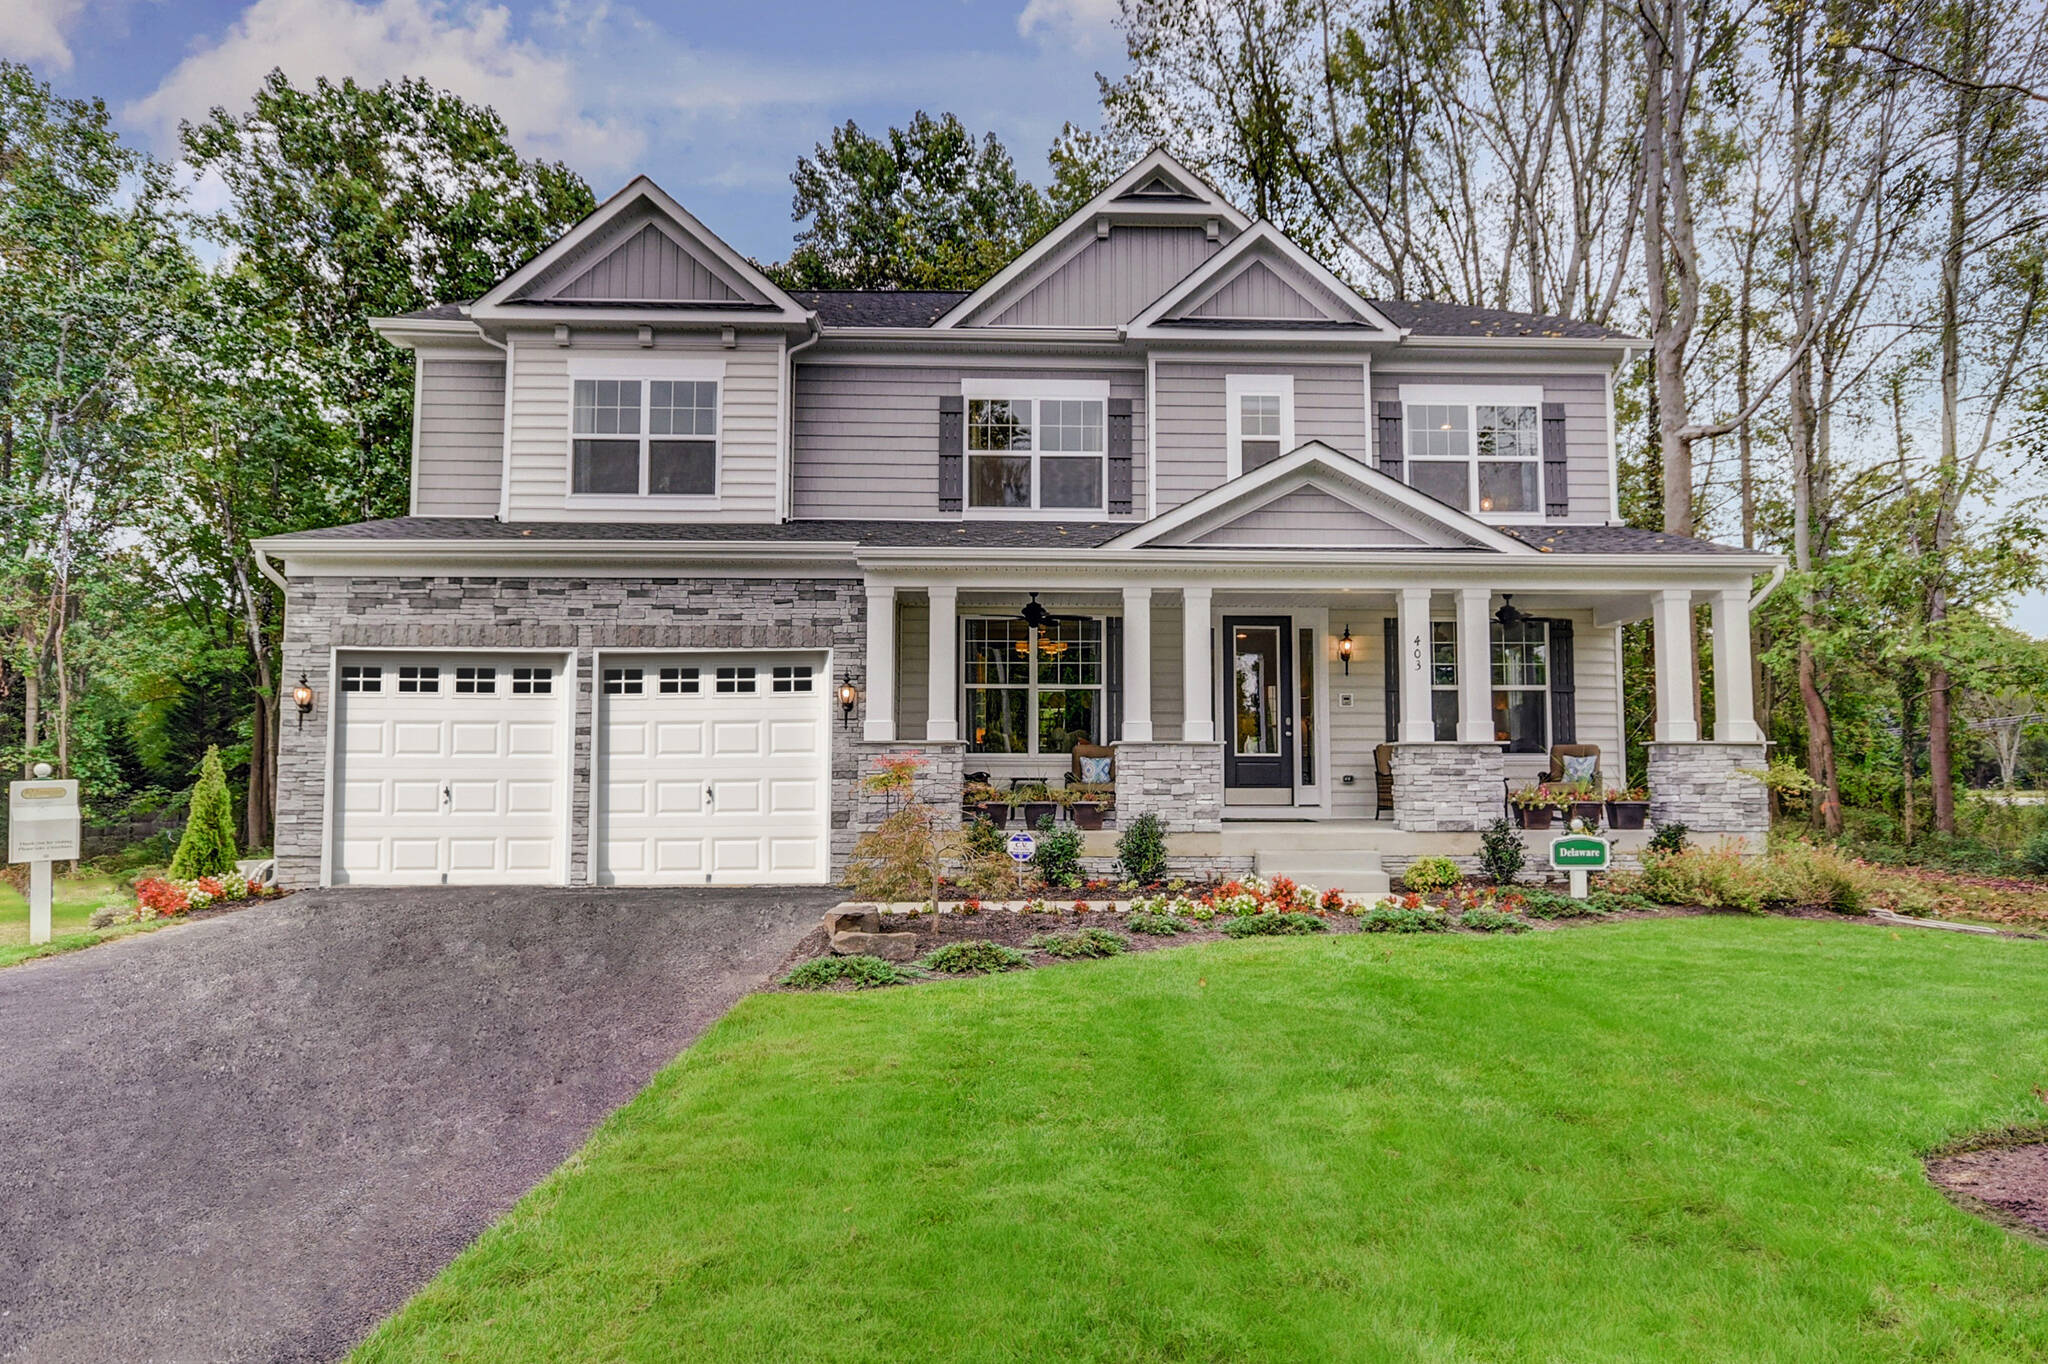 delaware c new home at ashers farm in maryland